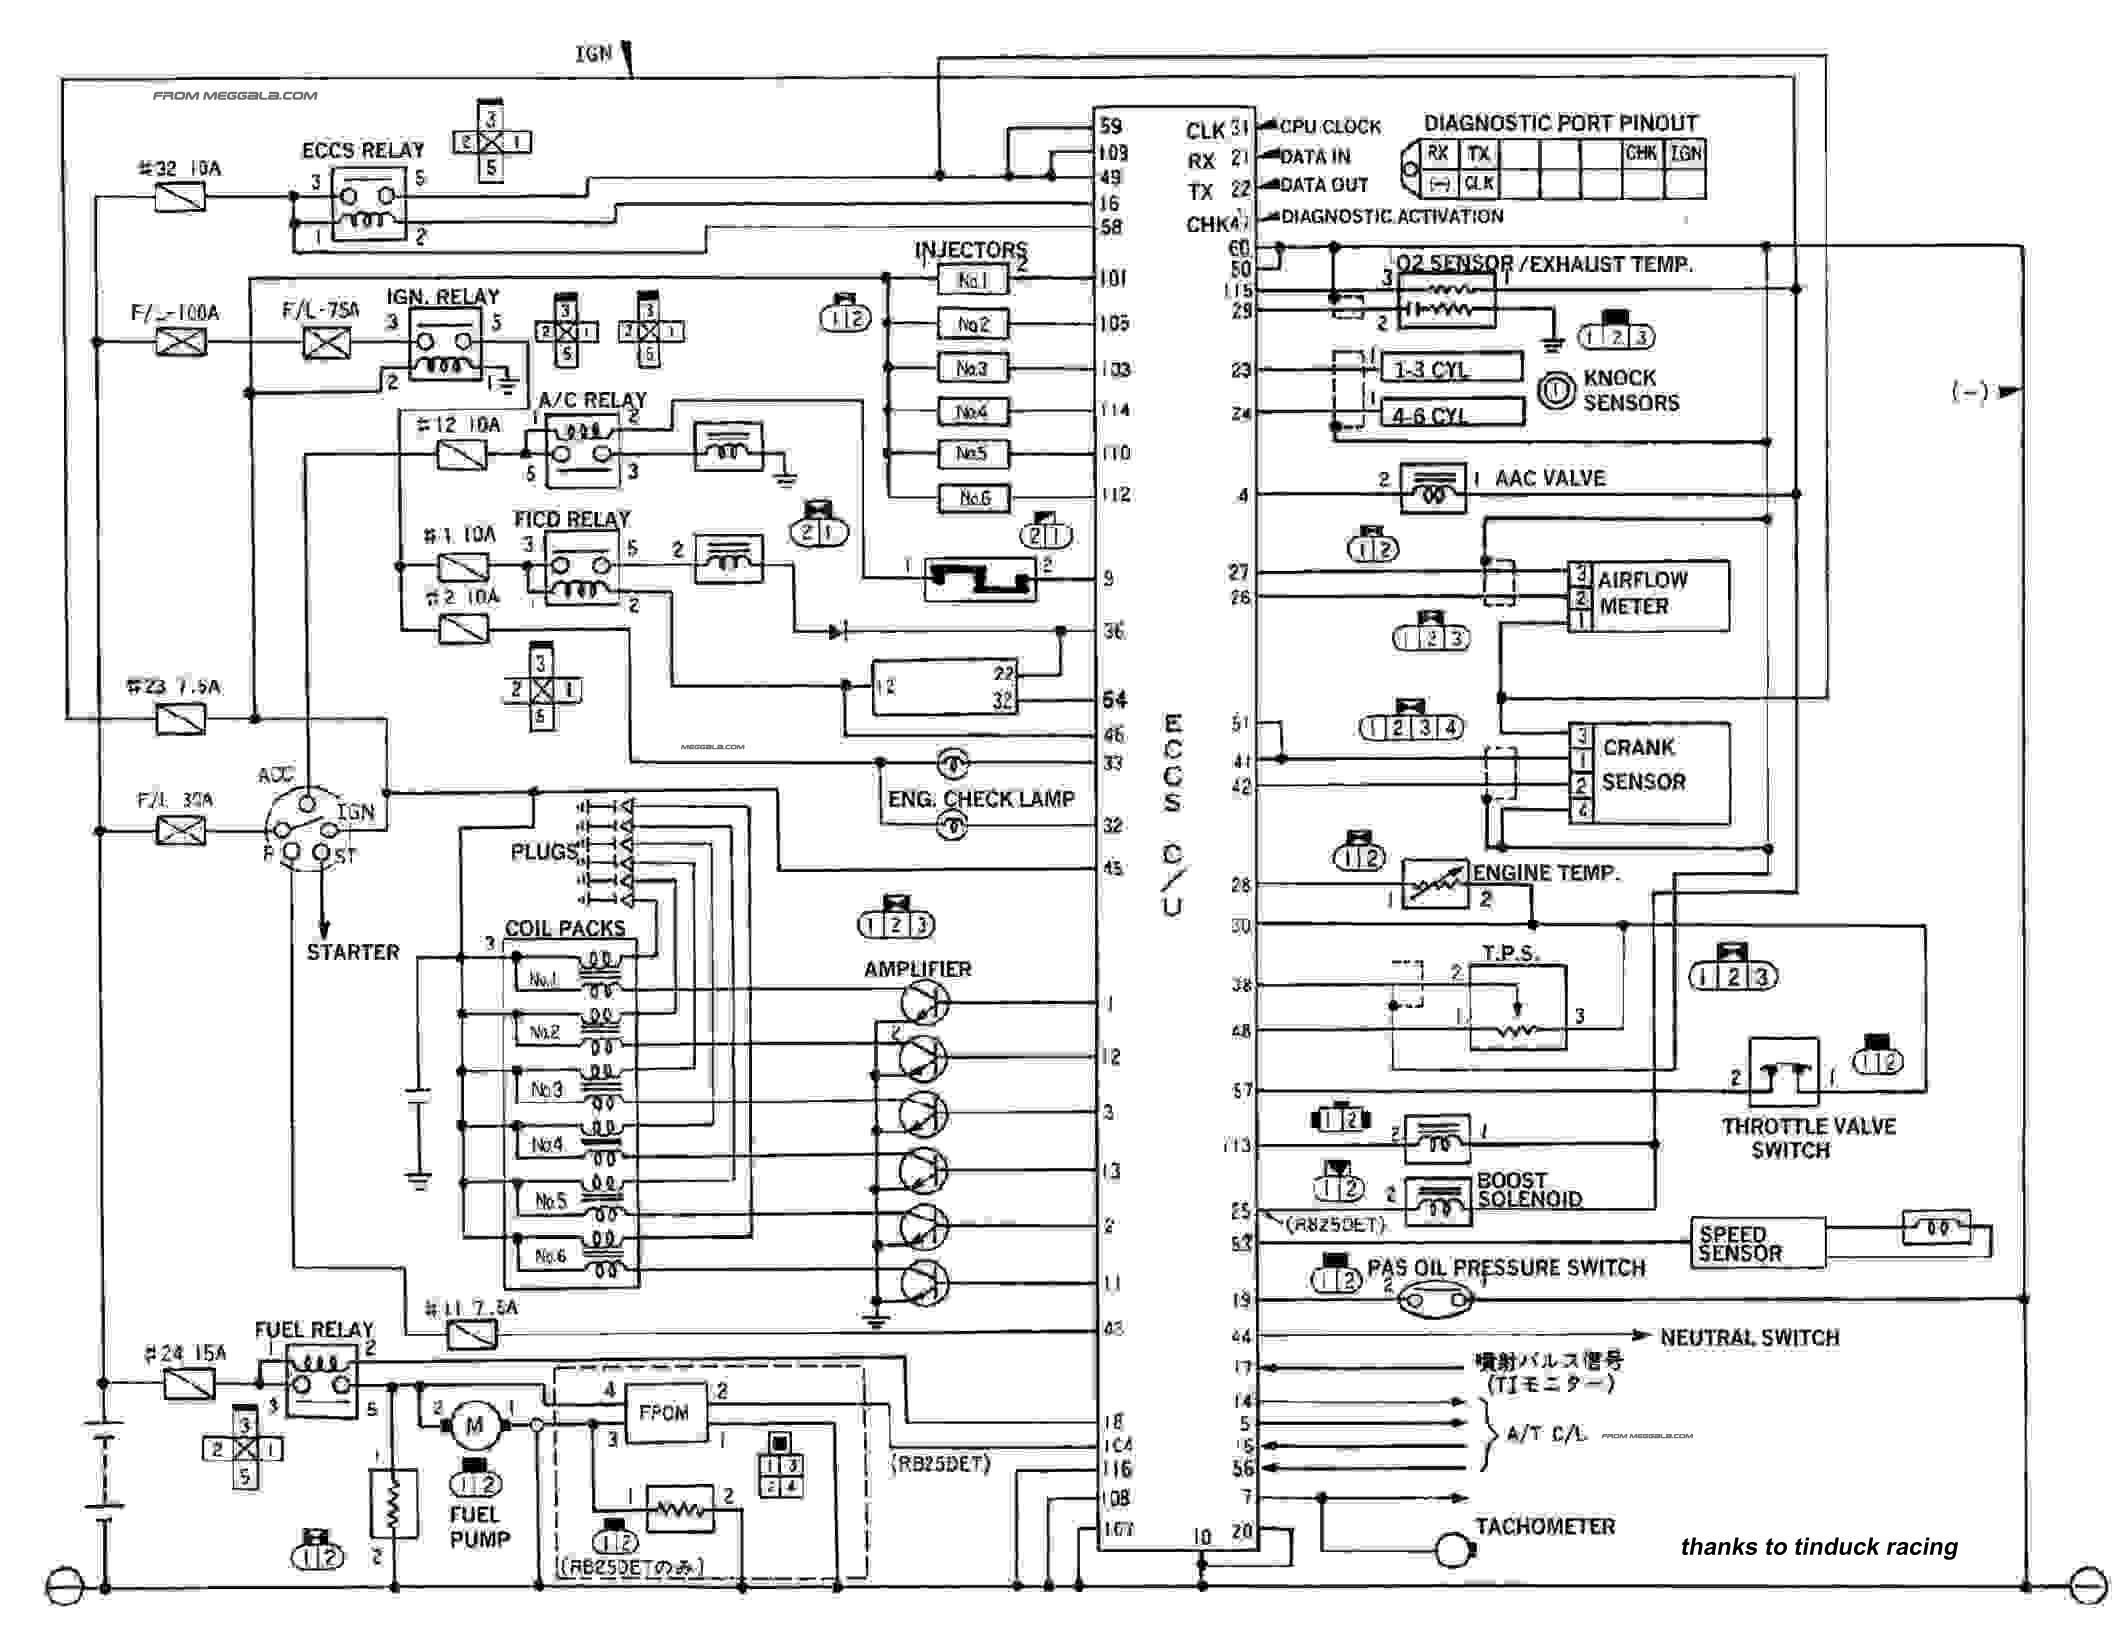 2003 Infiniti G35 Radio Wiring Diagram from detoxicrecenze.com